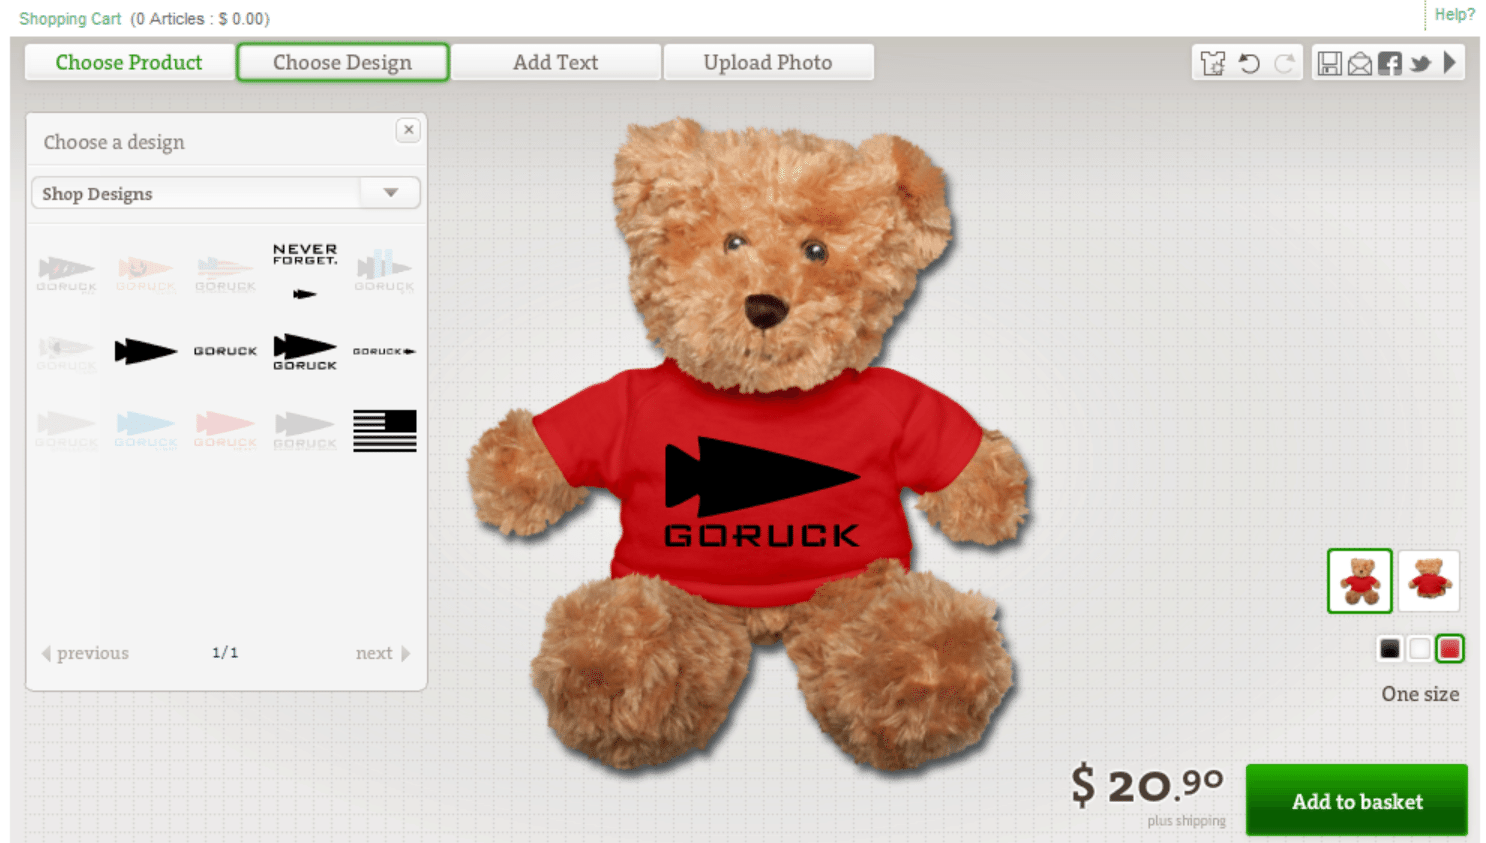 GORUCK Teddy Bear